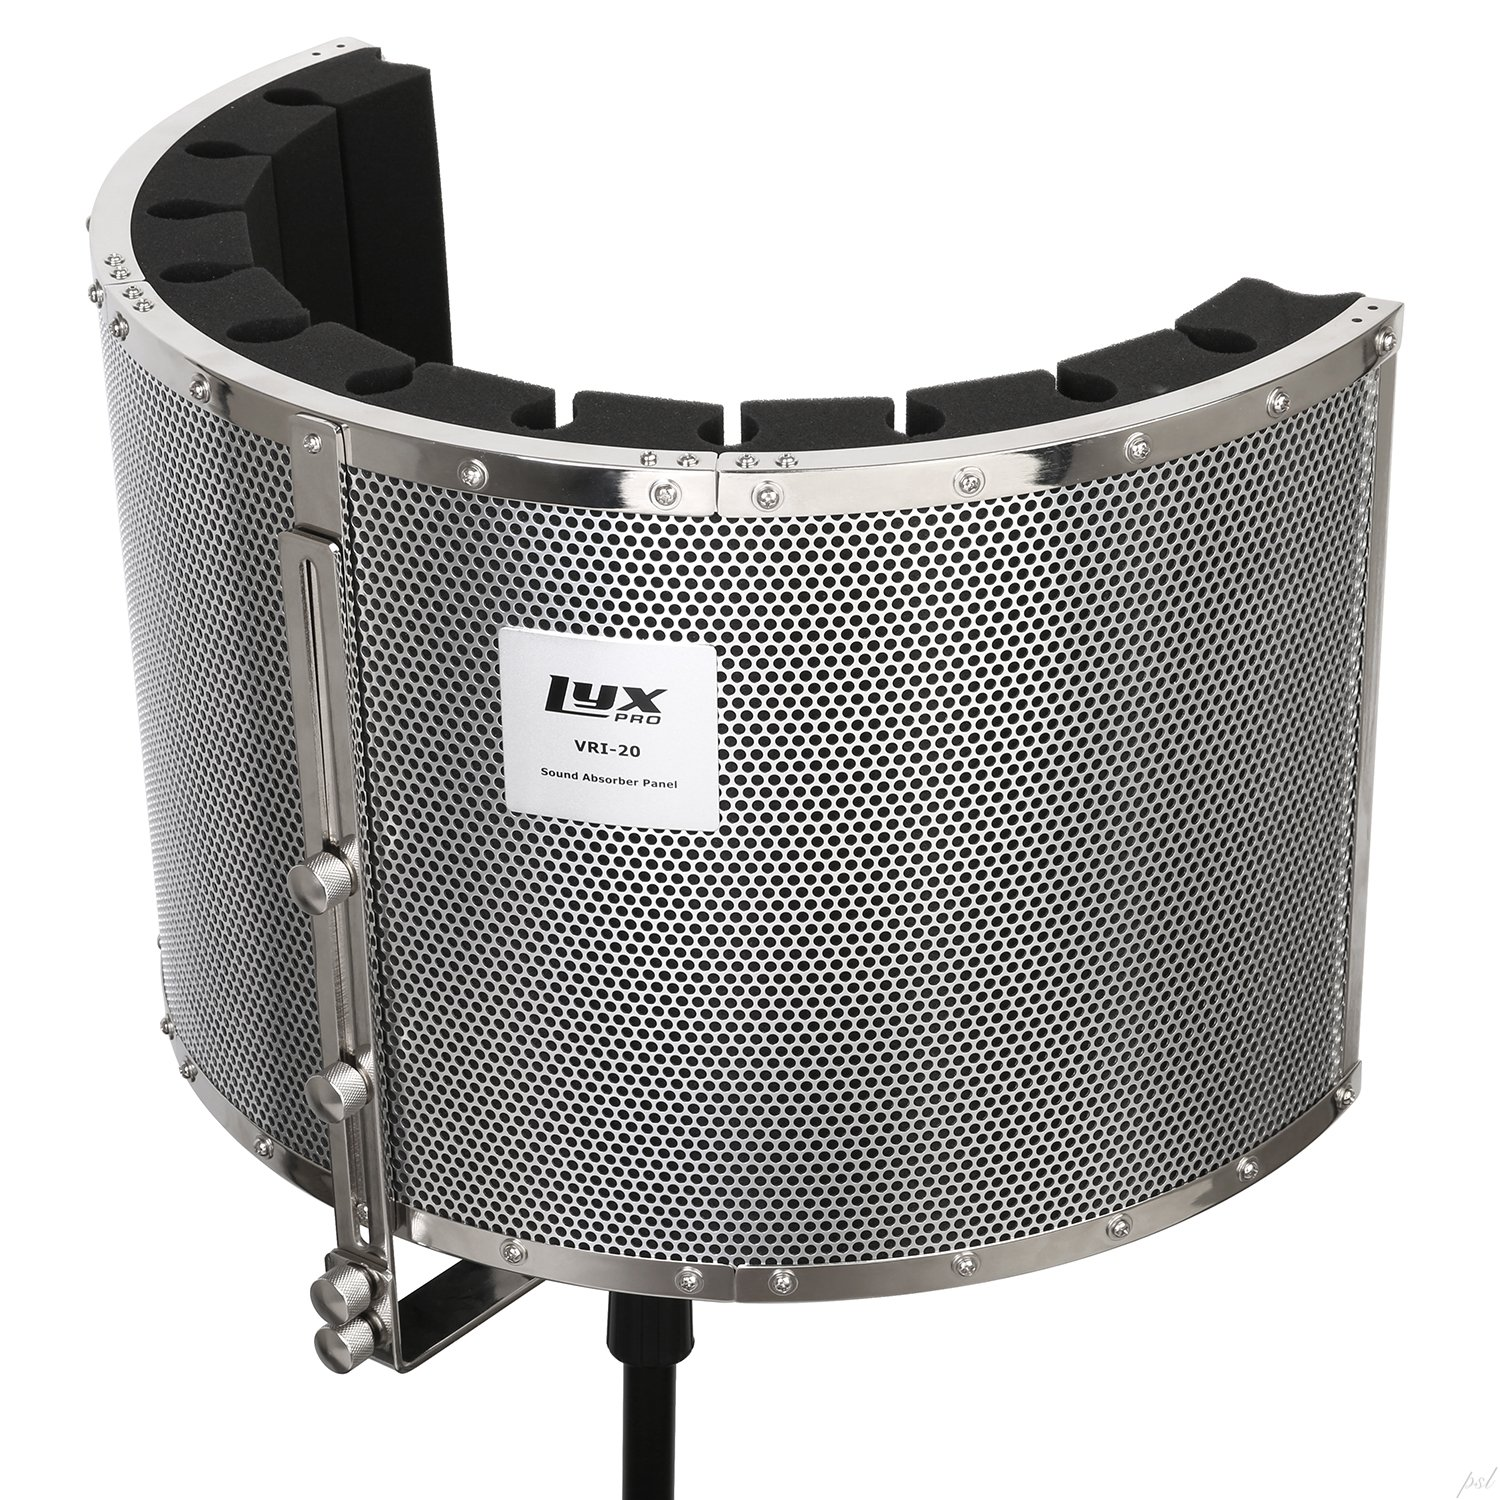 LyxPro VRI-10 Portable Sound Absorbing Vocal Recording Panel Stand Mount or Freestanding Desktop Mode